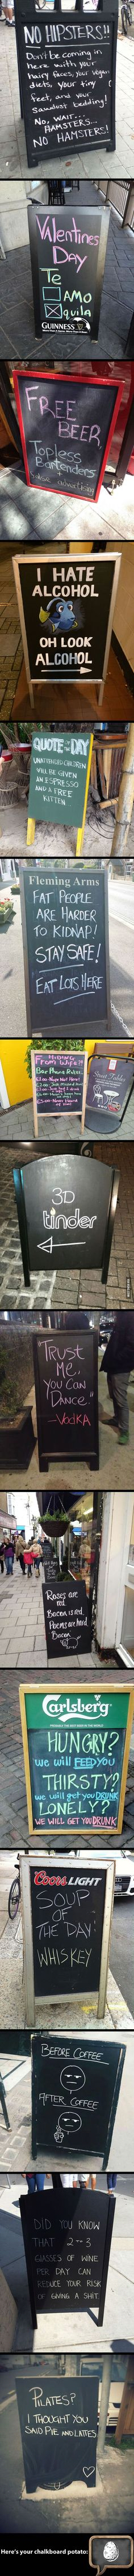 Some of the funniest bar & cafe chalkboard signs